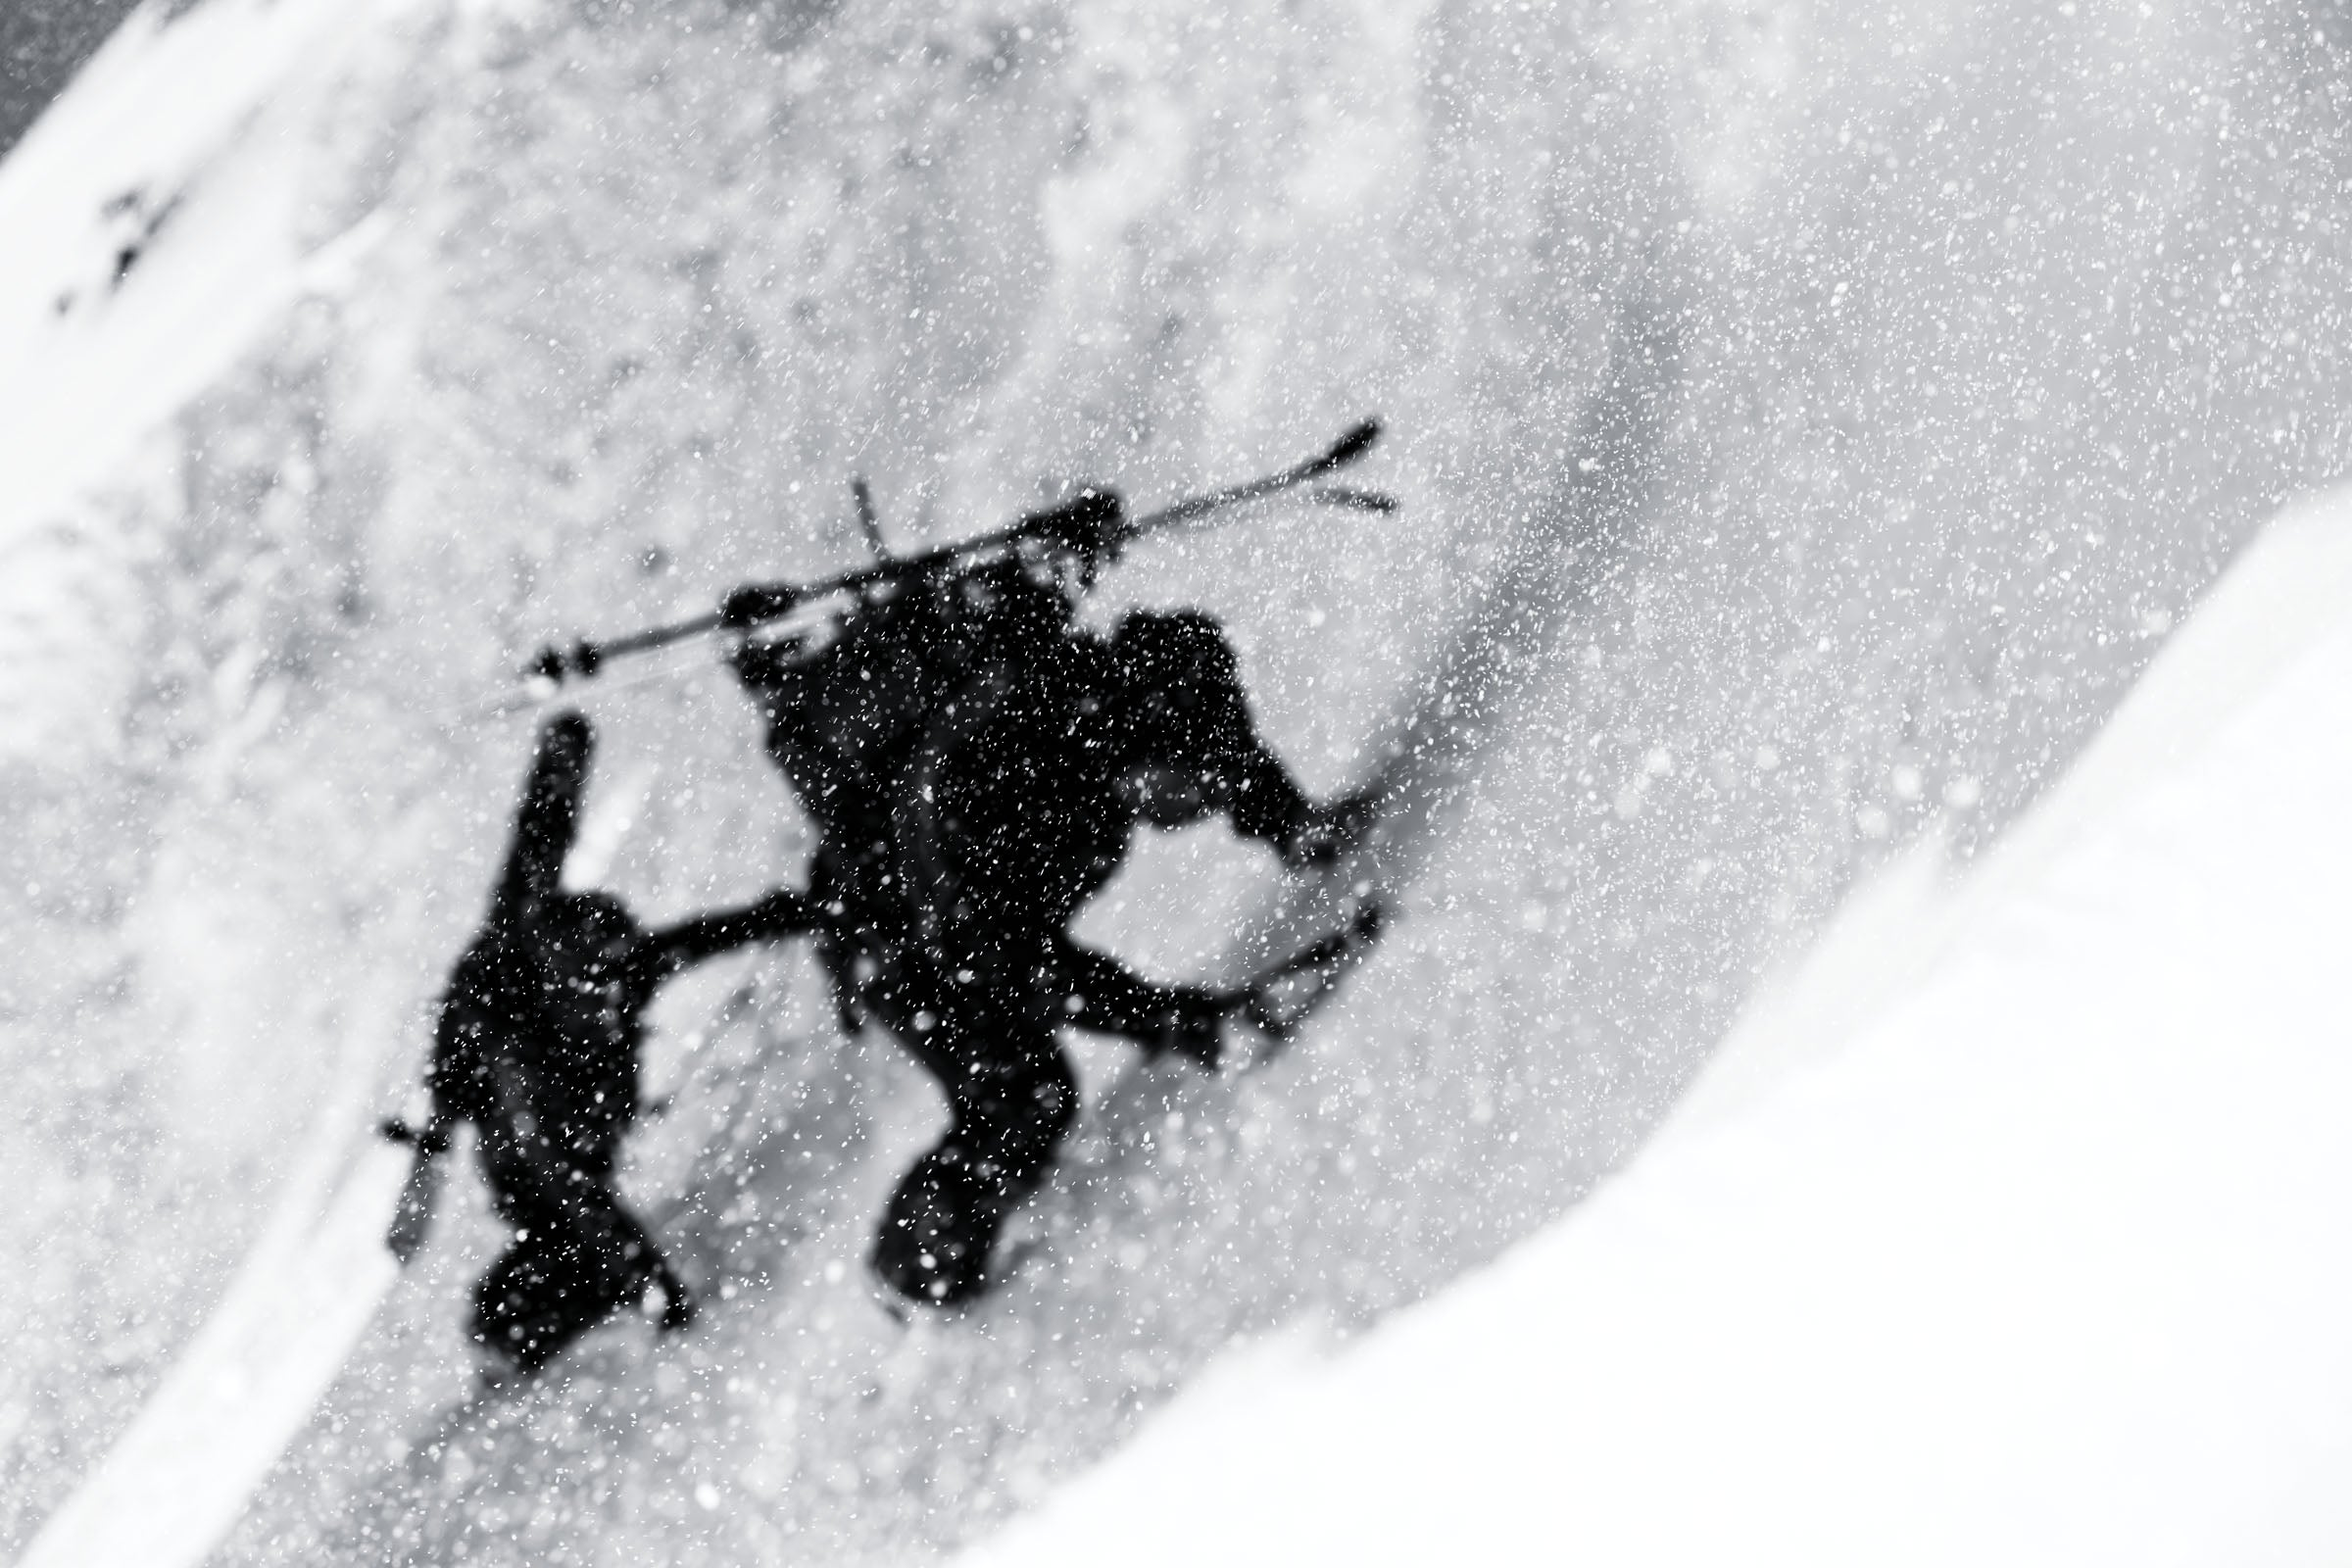 Backcountry Skiing in Smithers, B.C.